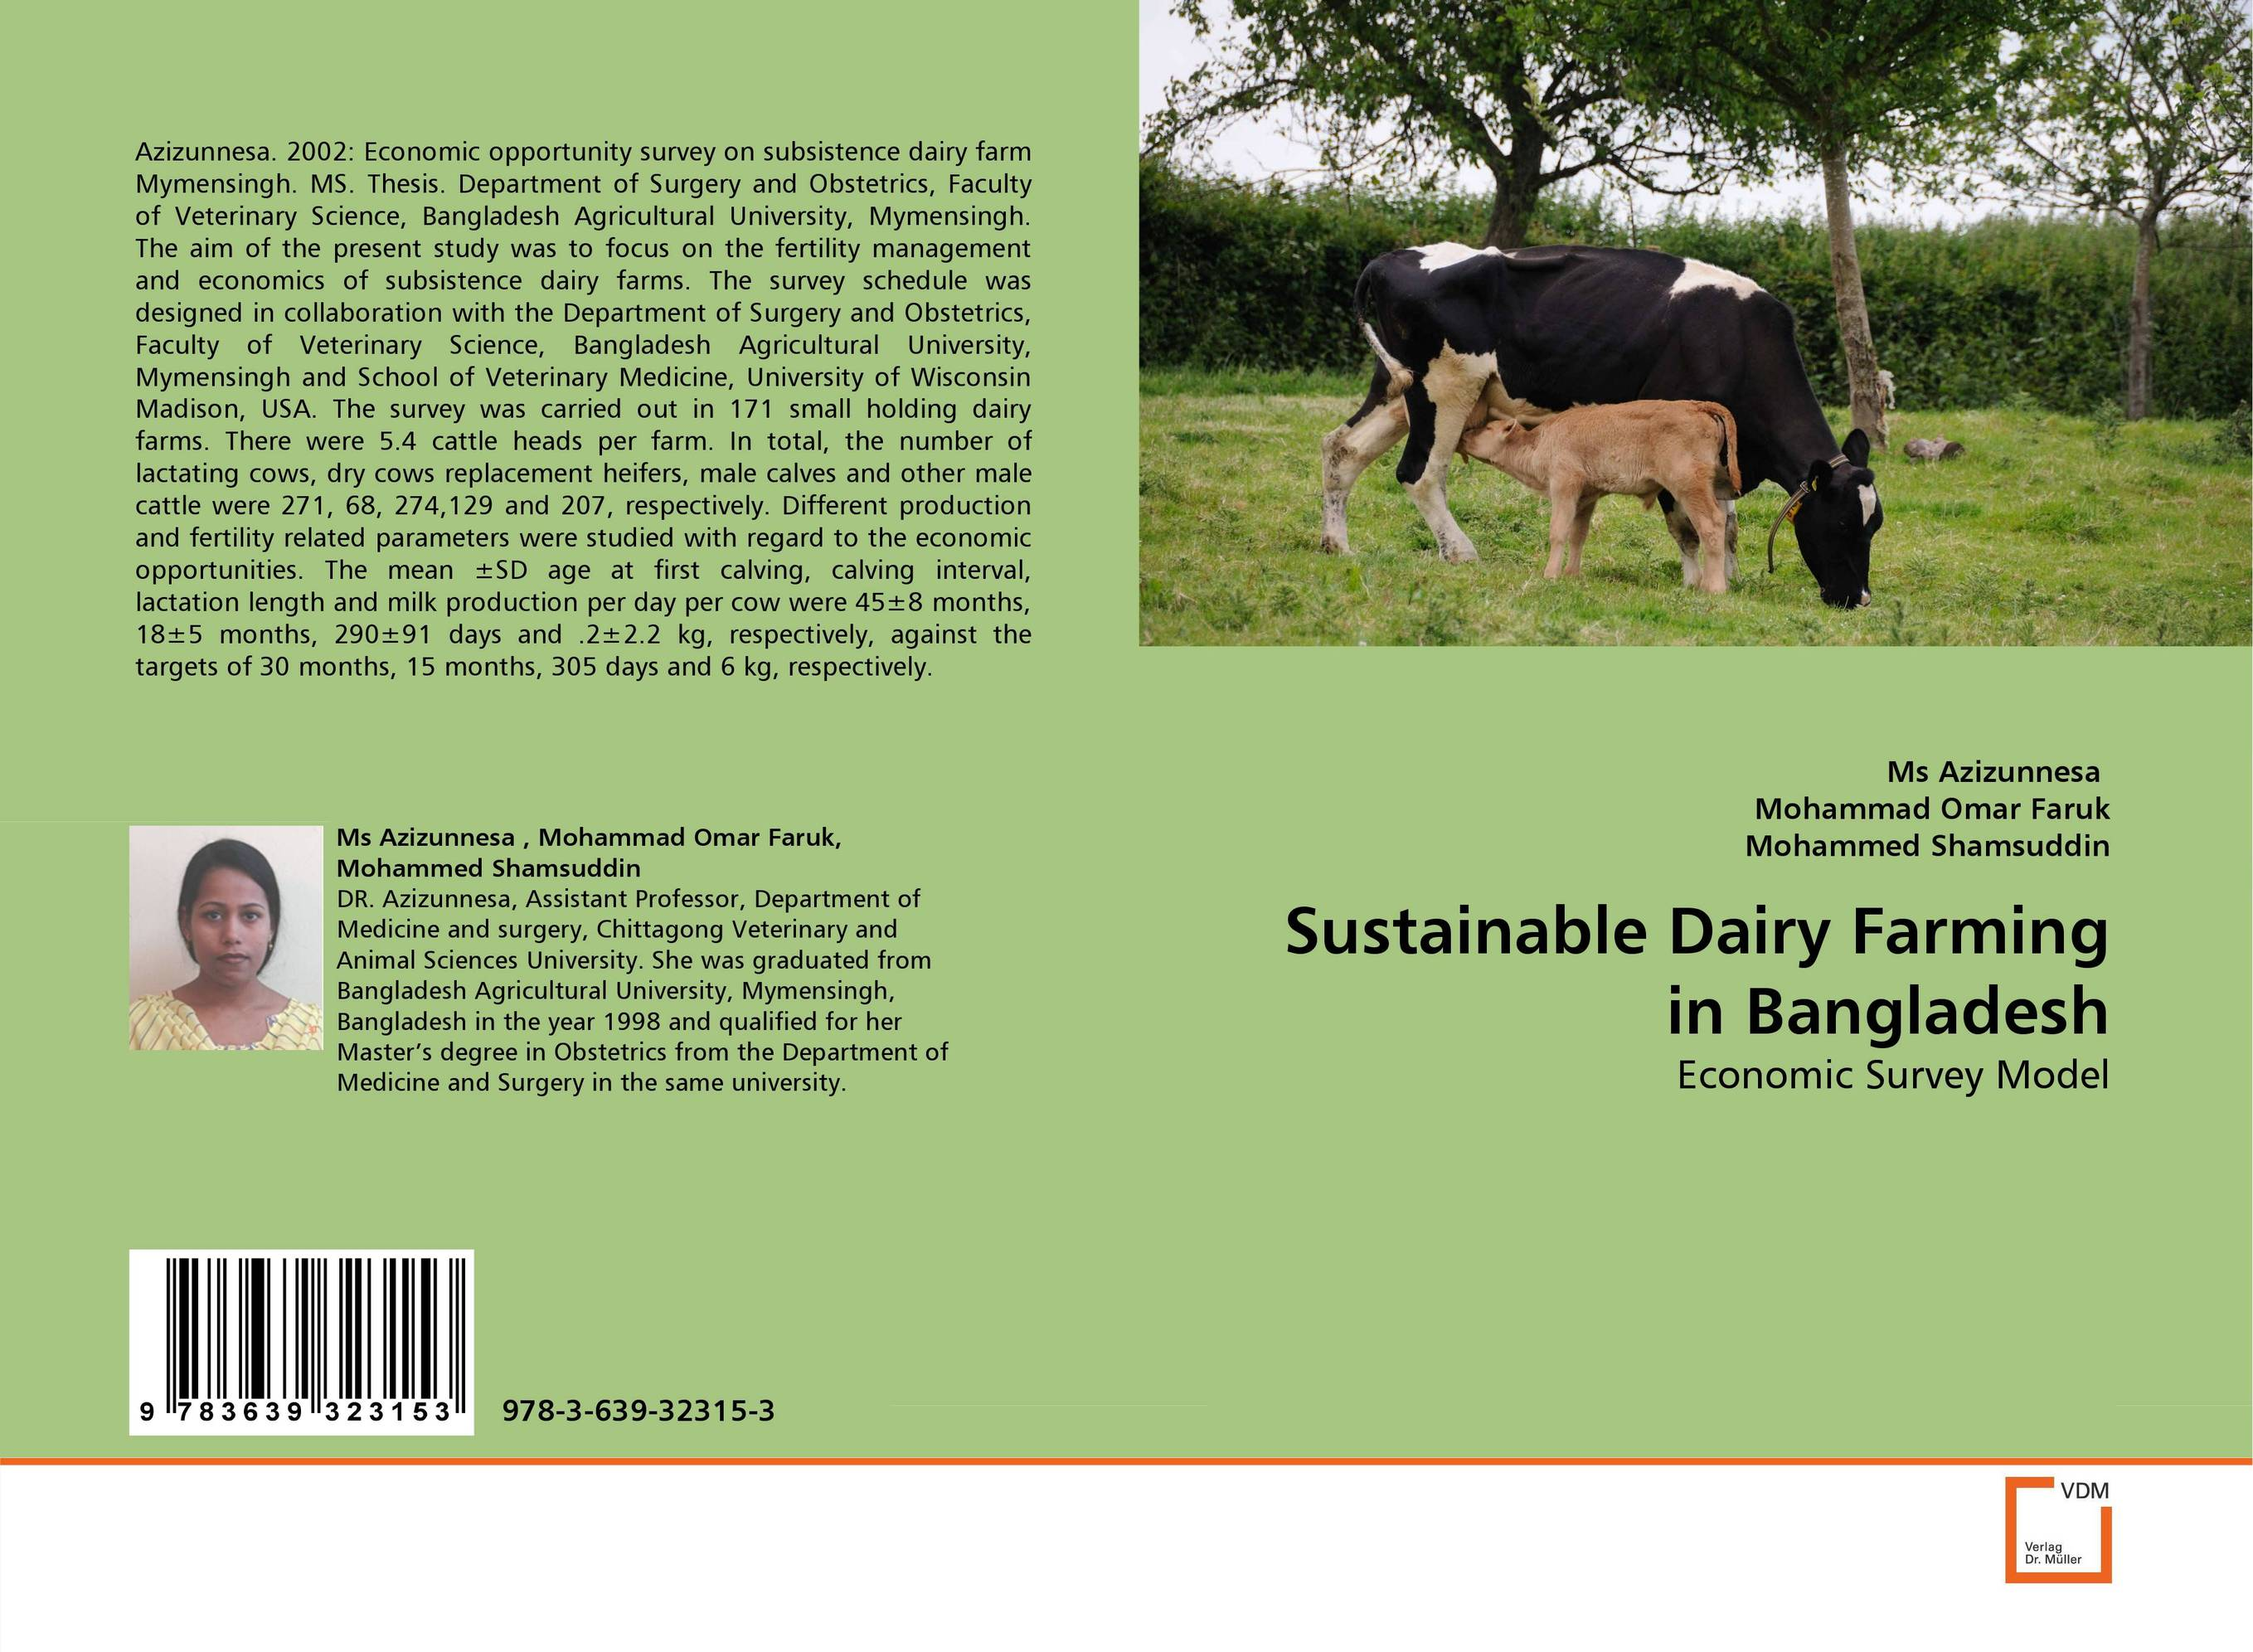 Sustainable Dairy Farming in Bangladesh claw disorders in dairy cows under smallholder zero grazing units